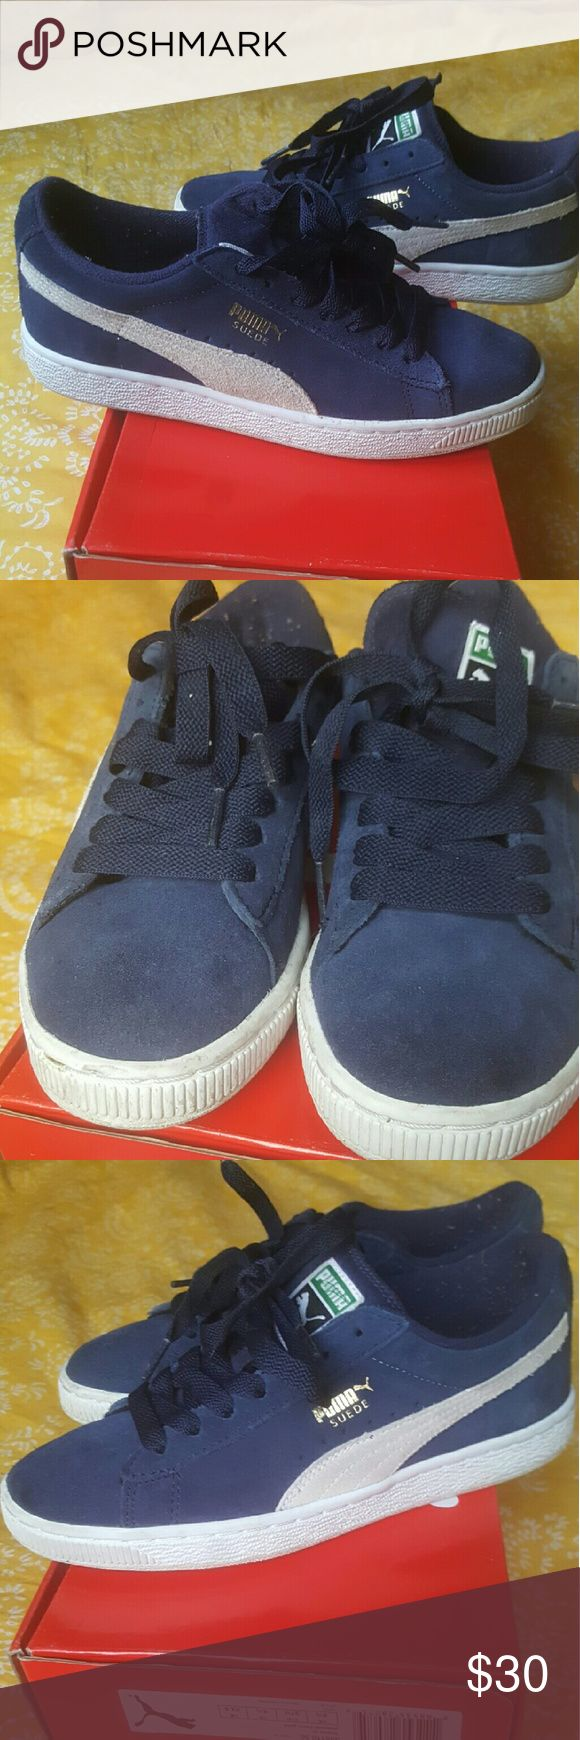 Puma suede sneakers boys Navy blue great condition sneakers no damage to these comfy pair will be sent with box Puma Shoes Sneakers